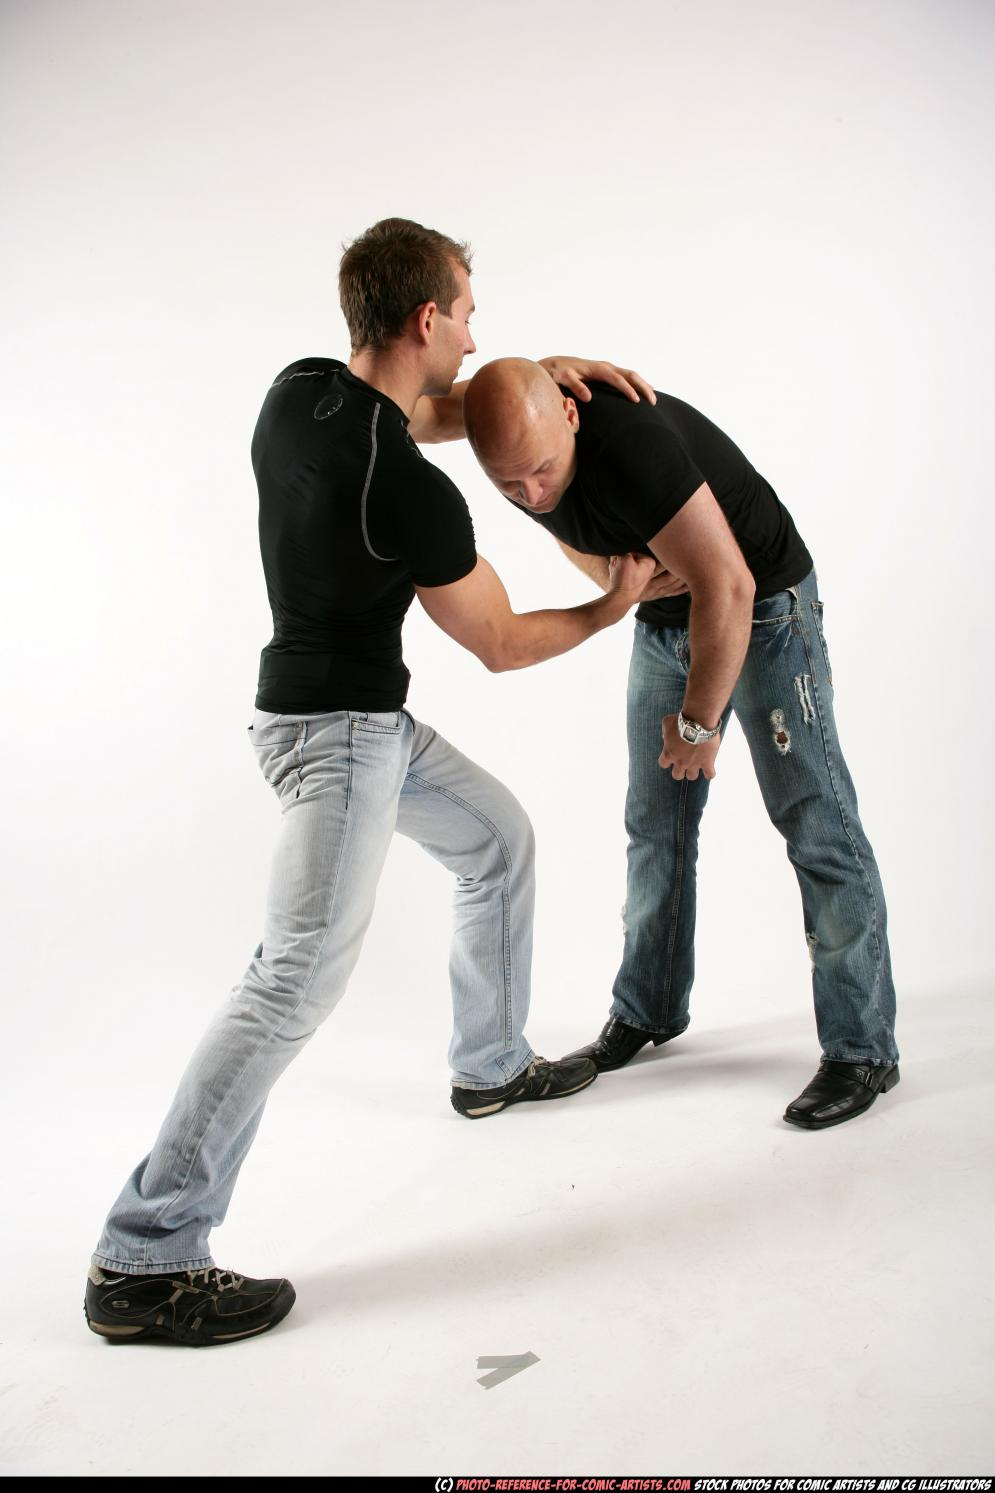 Image from Punch In The Stomach - 2458fight_stomach_punch_00.jpg